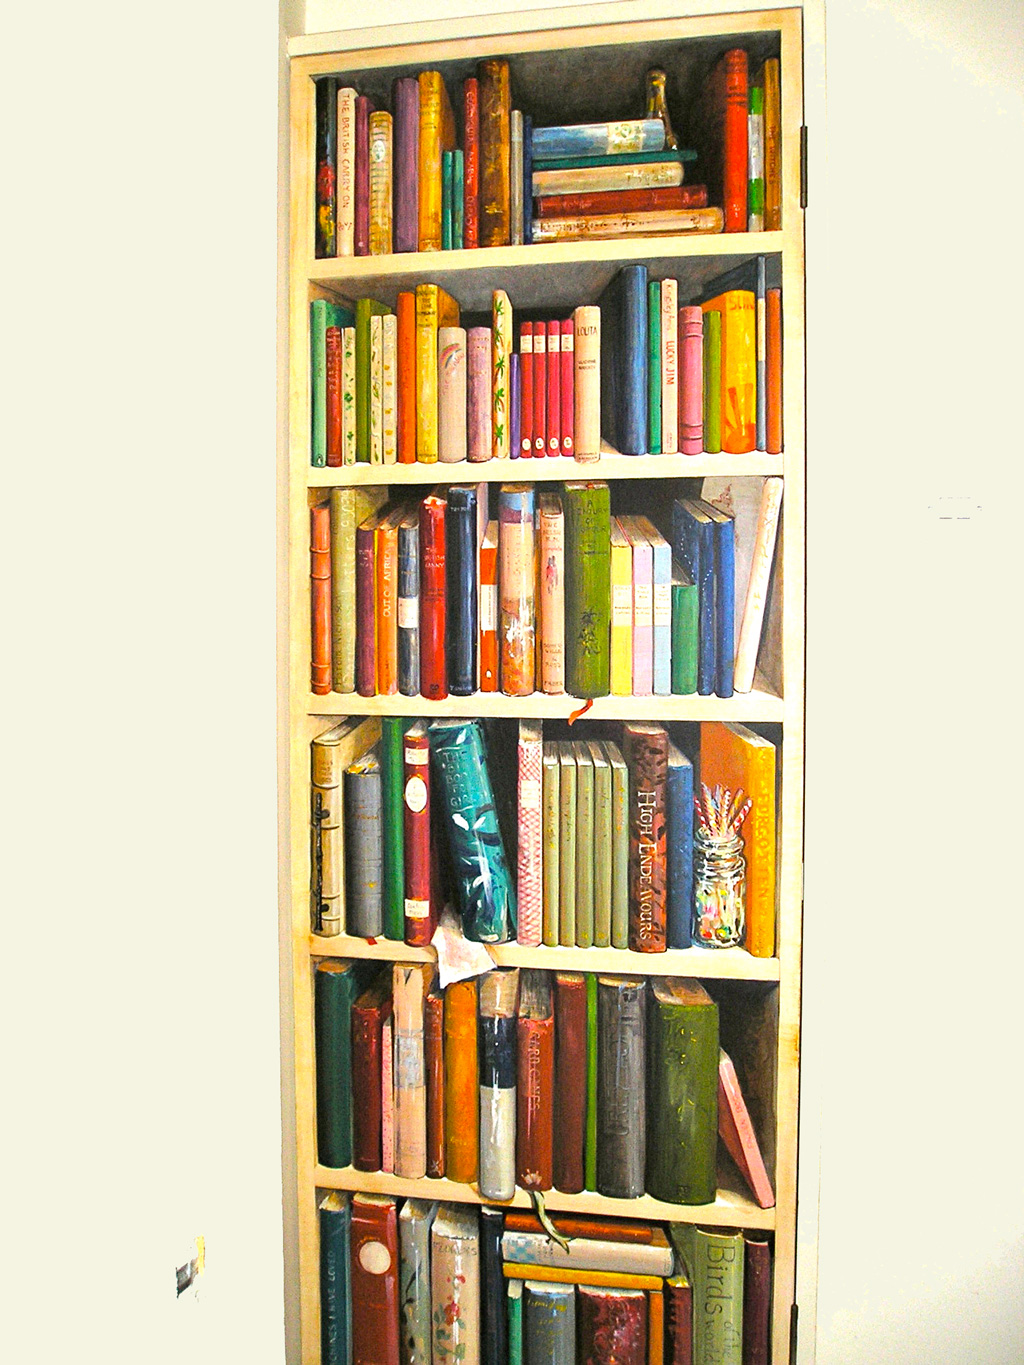 Trompe l'oeil biographical bookcase, London.